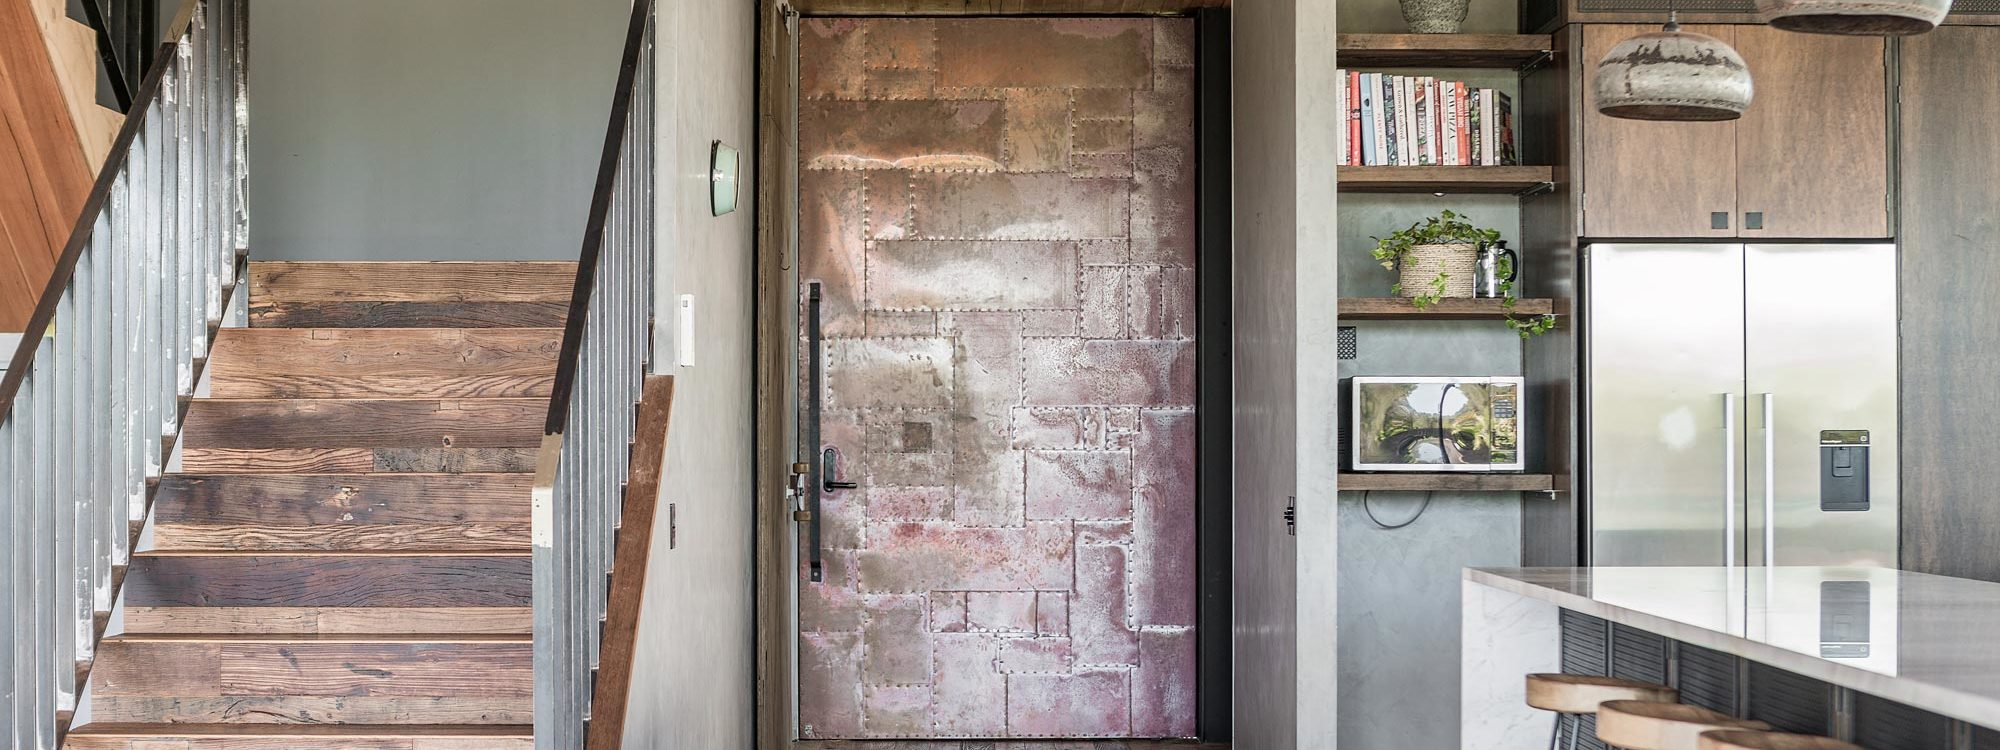 Beach Box - Byron Bay - Styled Copper Entrance Door